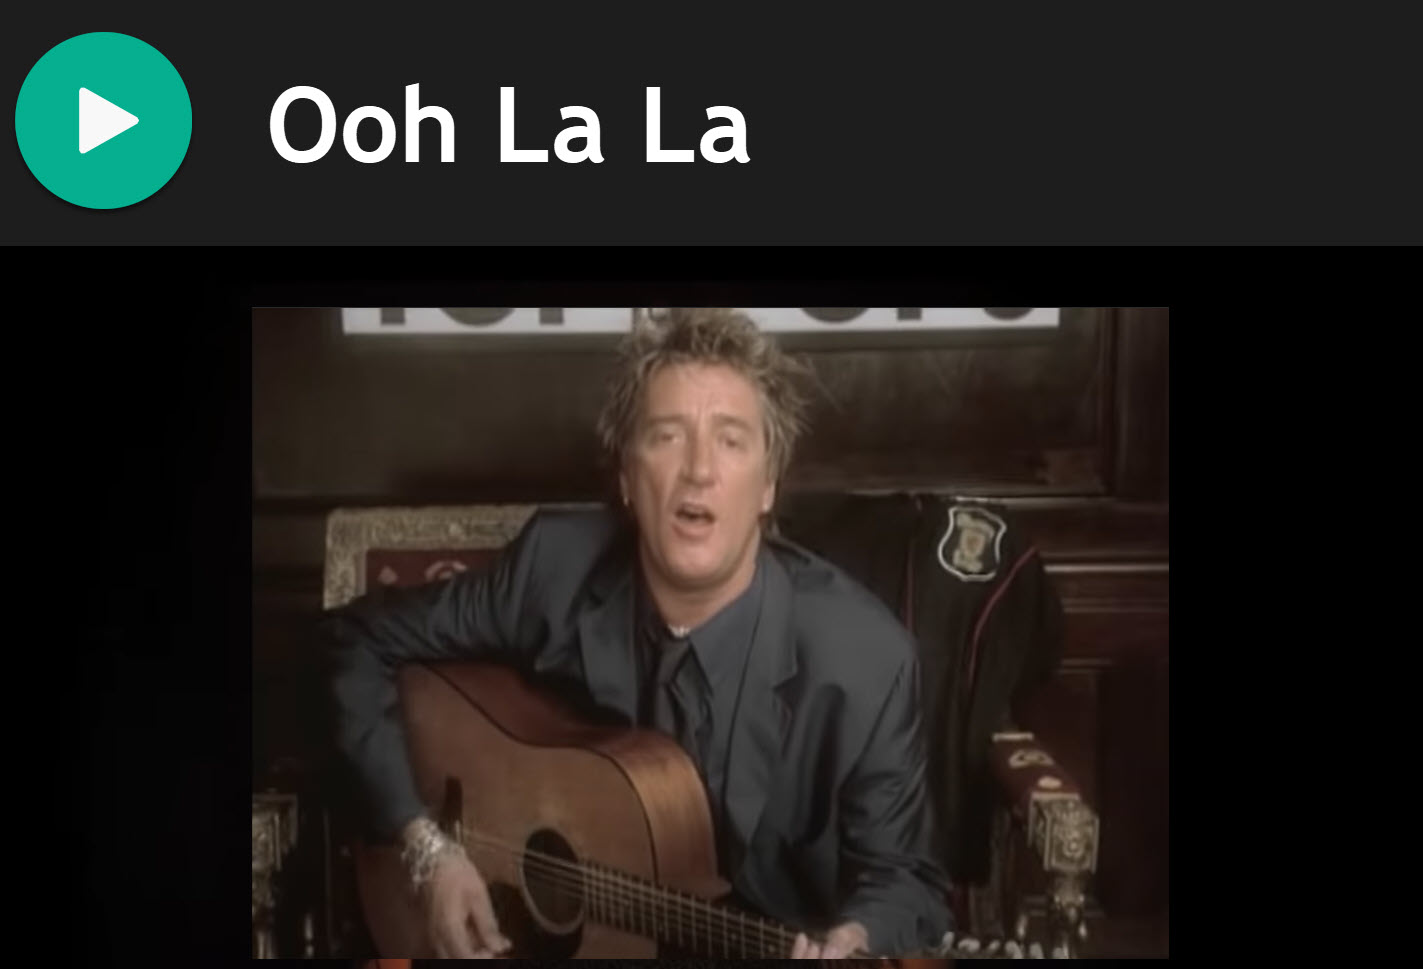 Ooh La La by Rod Stewart for Bagpipes